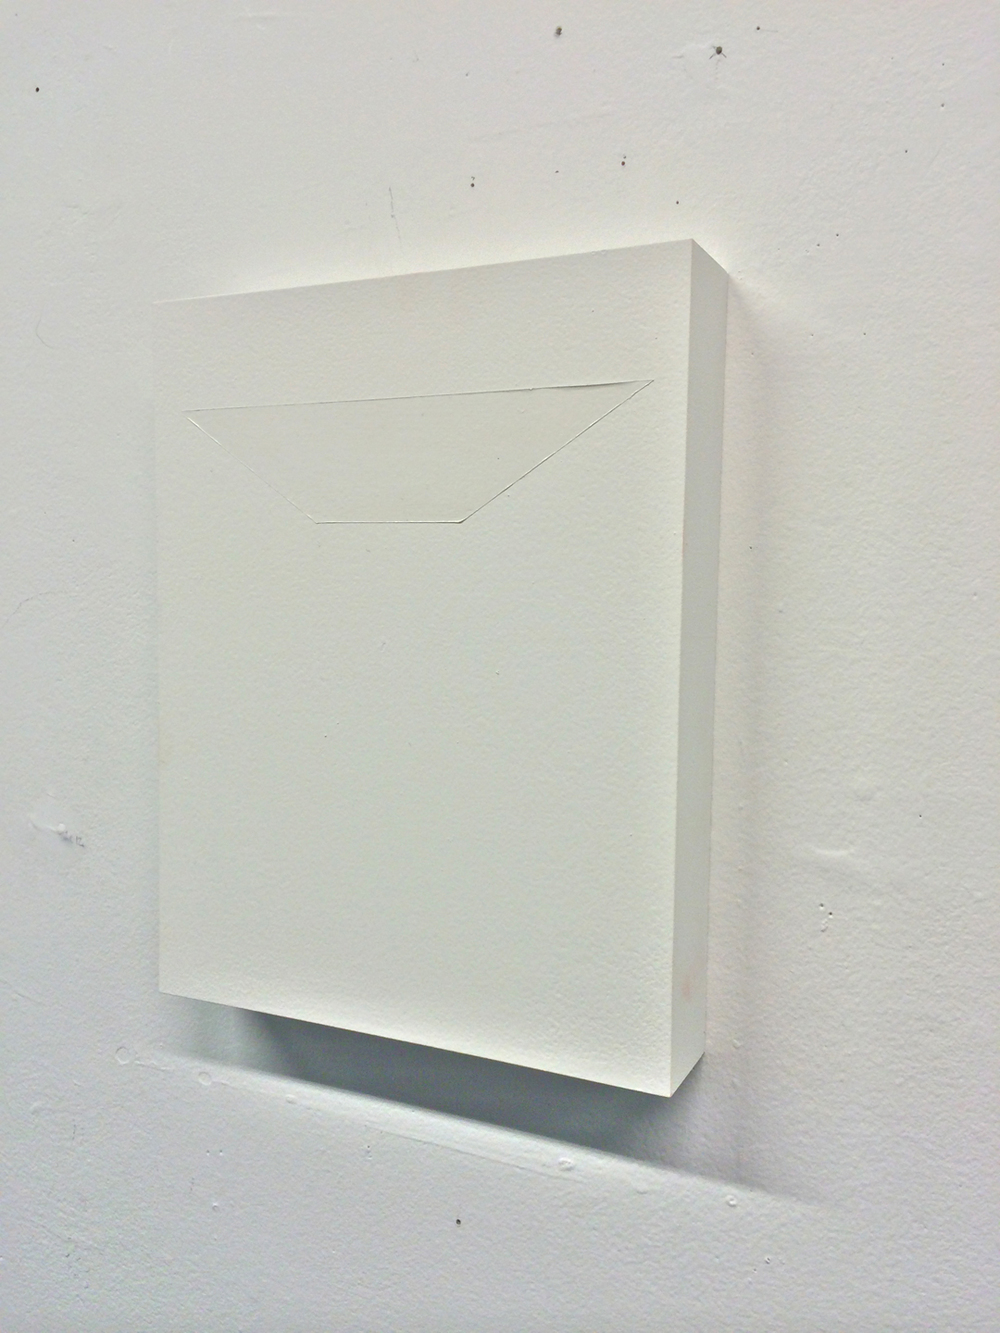 Untitled (Construction of white space III)